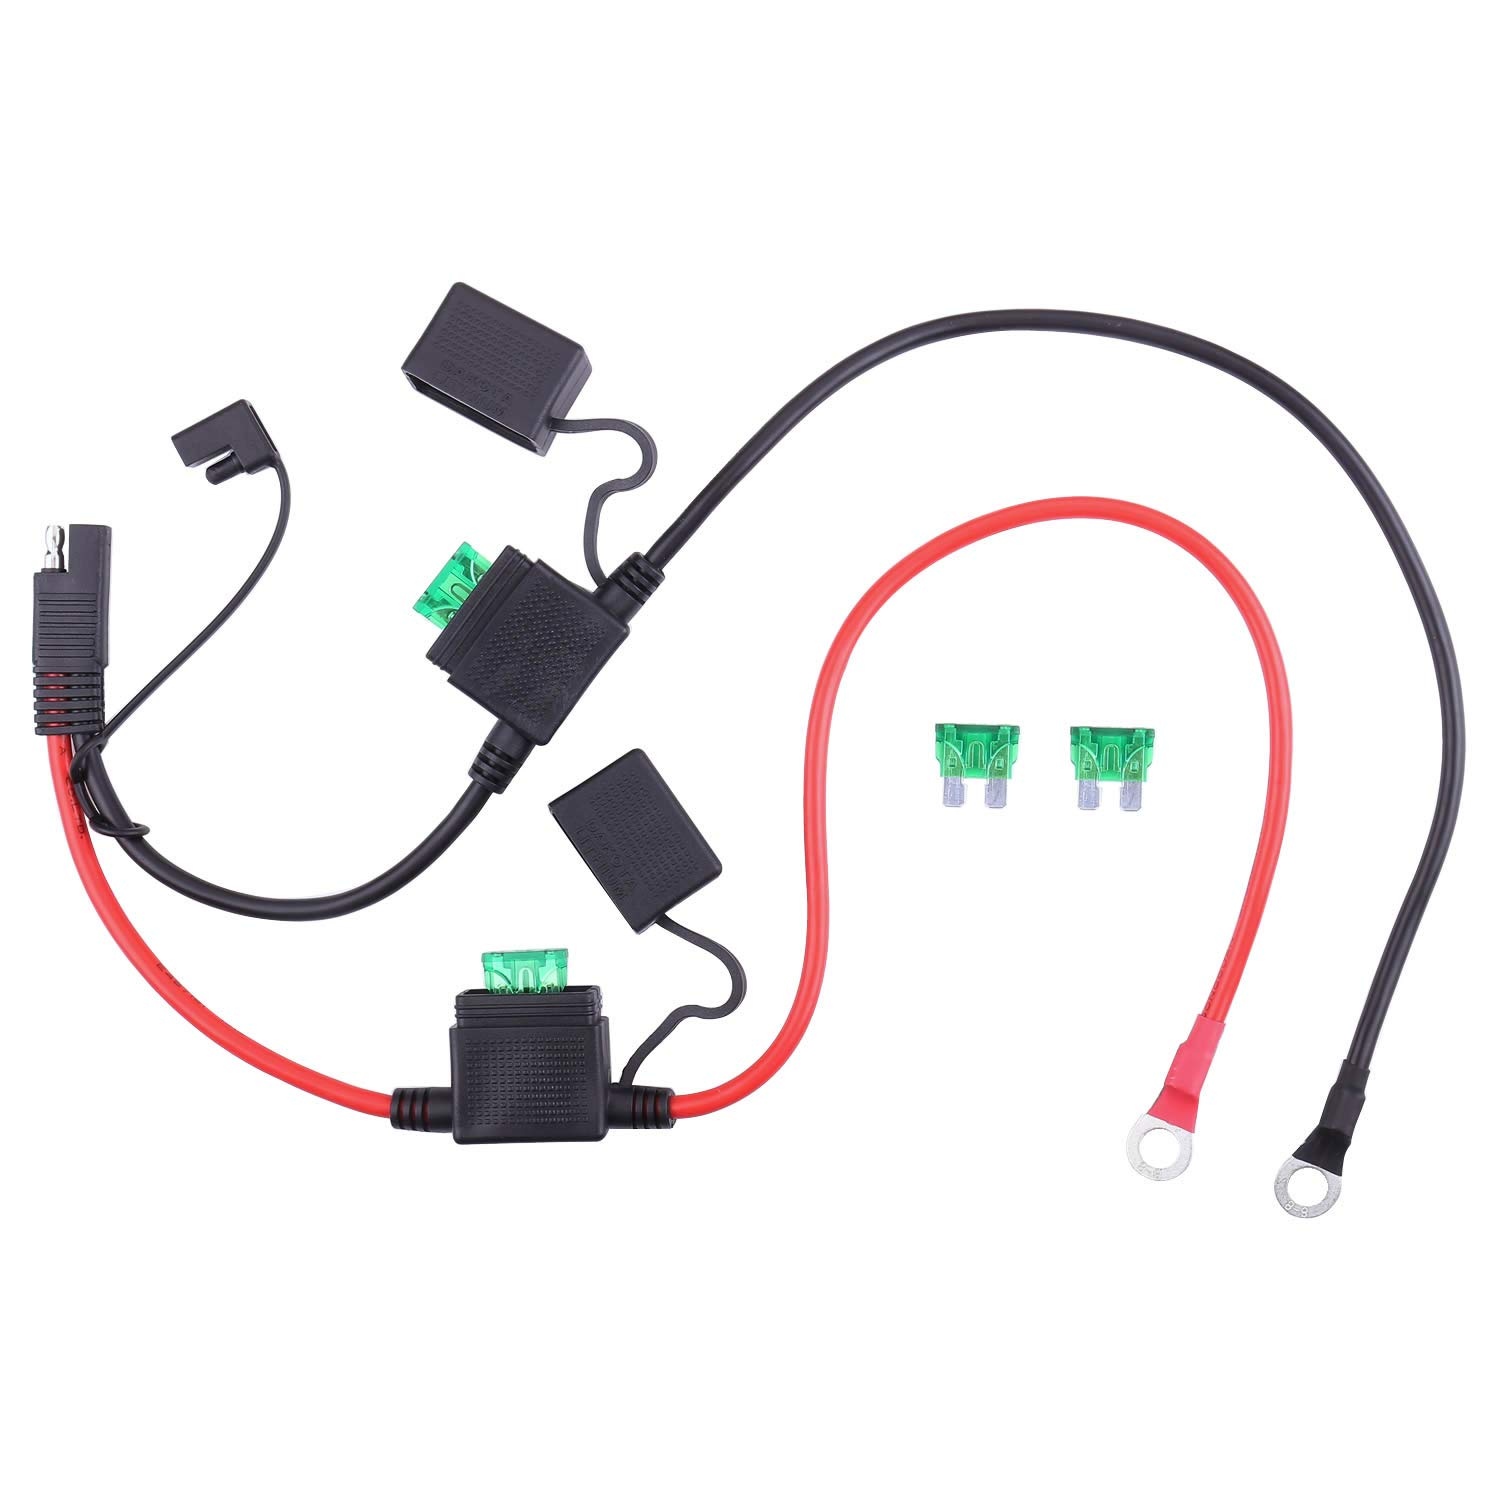 Ring Terminal To SAE Quick Disconnect Extension Cable 2ft for Car Motorcycle